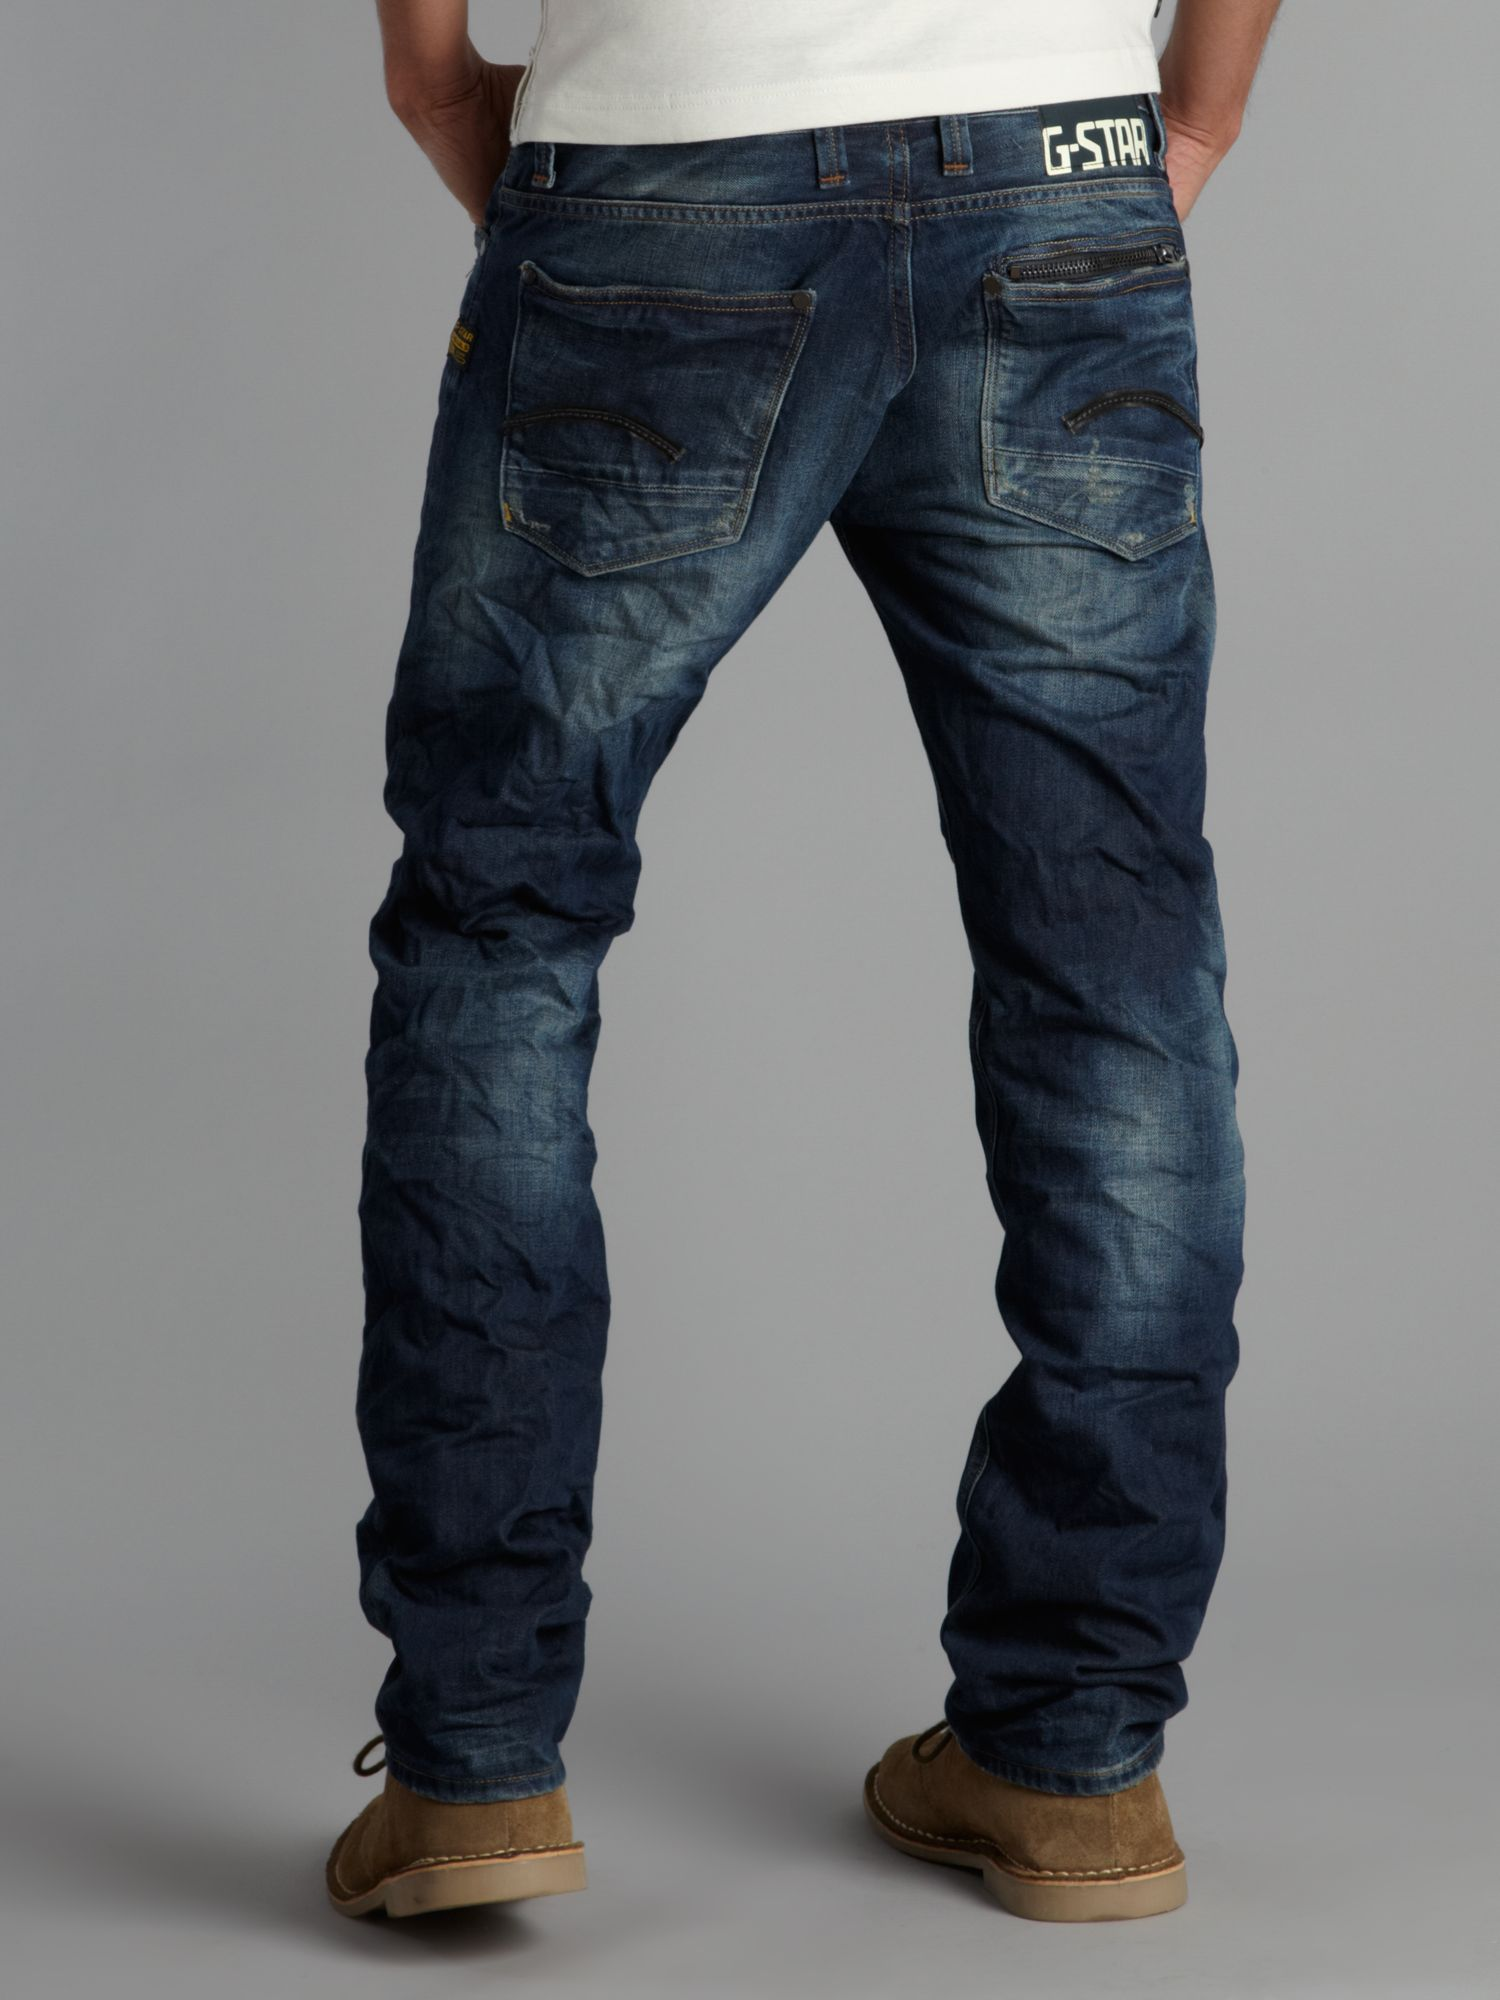 g star raw straight fitted attacc jeans in blue for men lyst. Black Bedroom Furniture Sets. Home Design Ideas